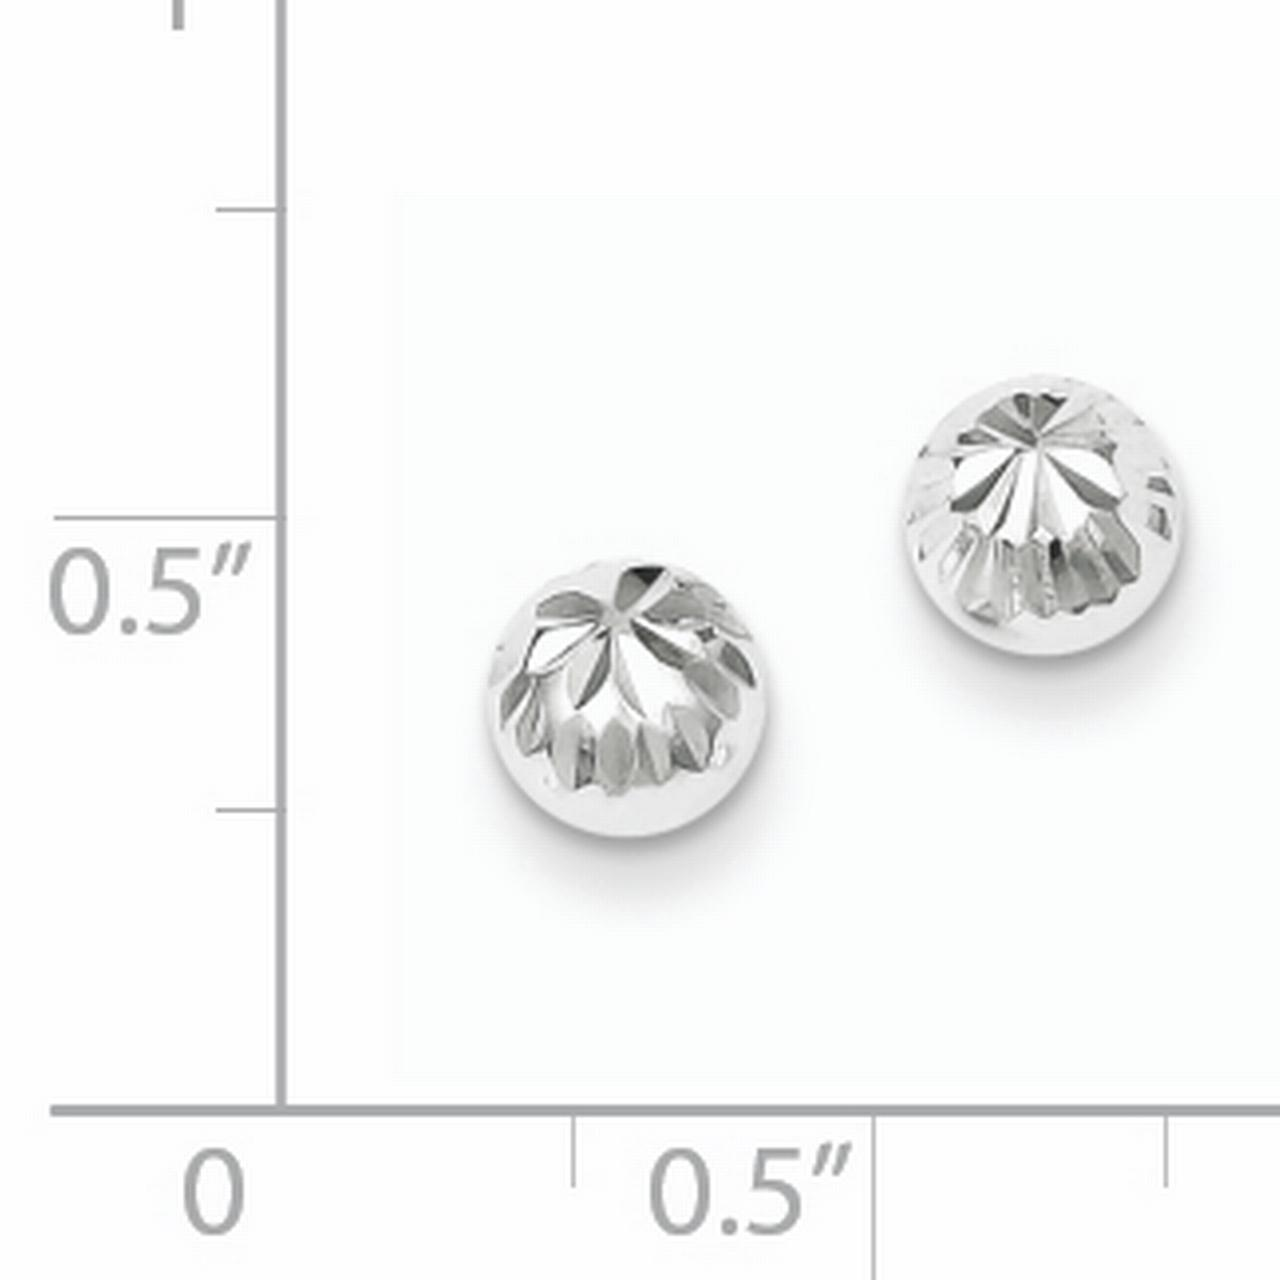 925 Sterling Silver Post Stud Earrings Ball Button Fine Jewelry Gifts For Women For Her - image 1 de 2